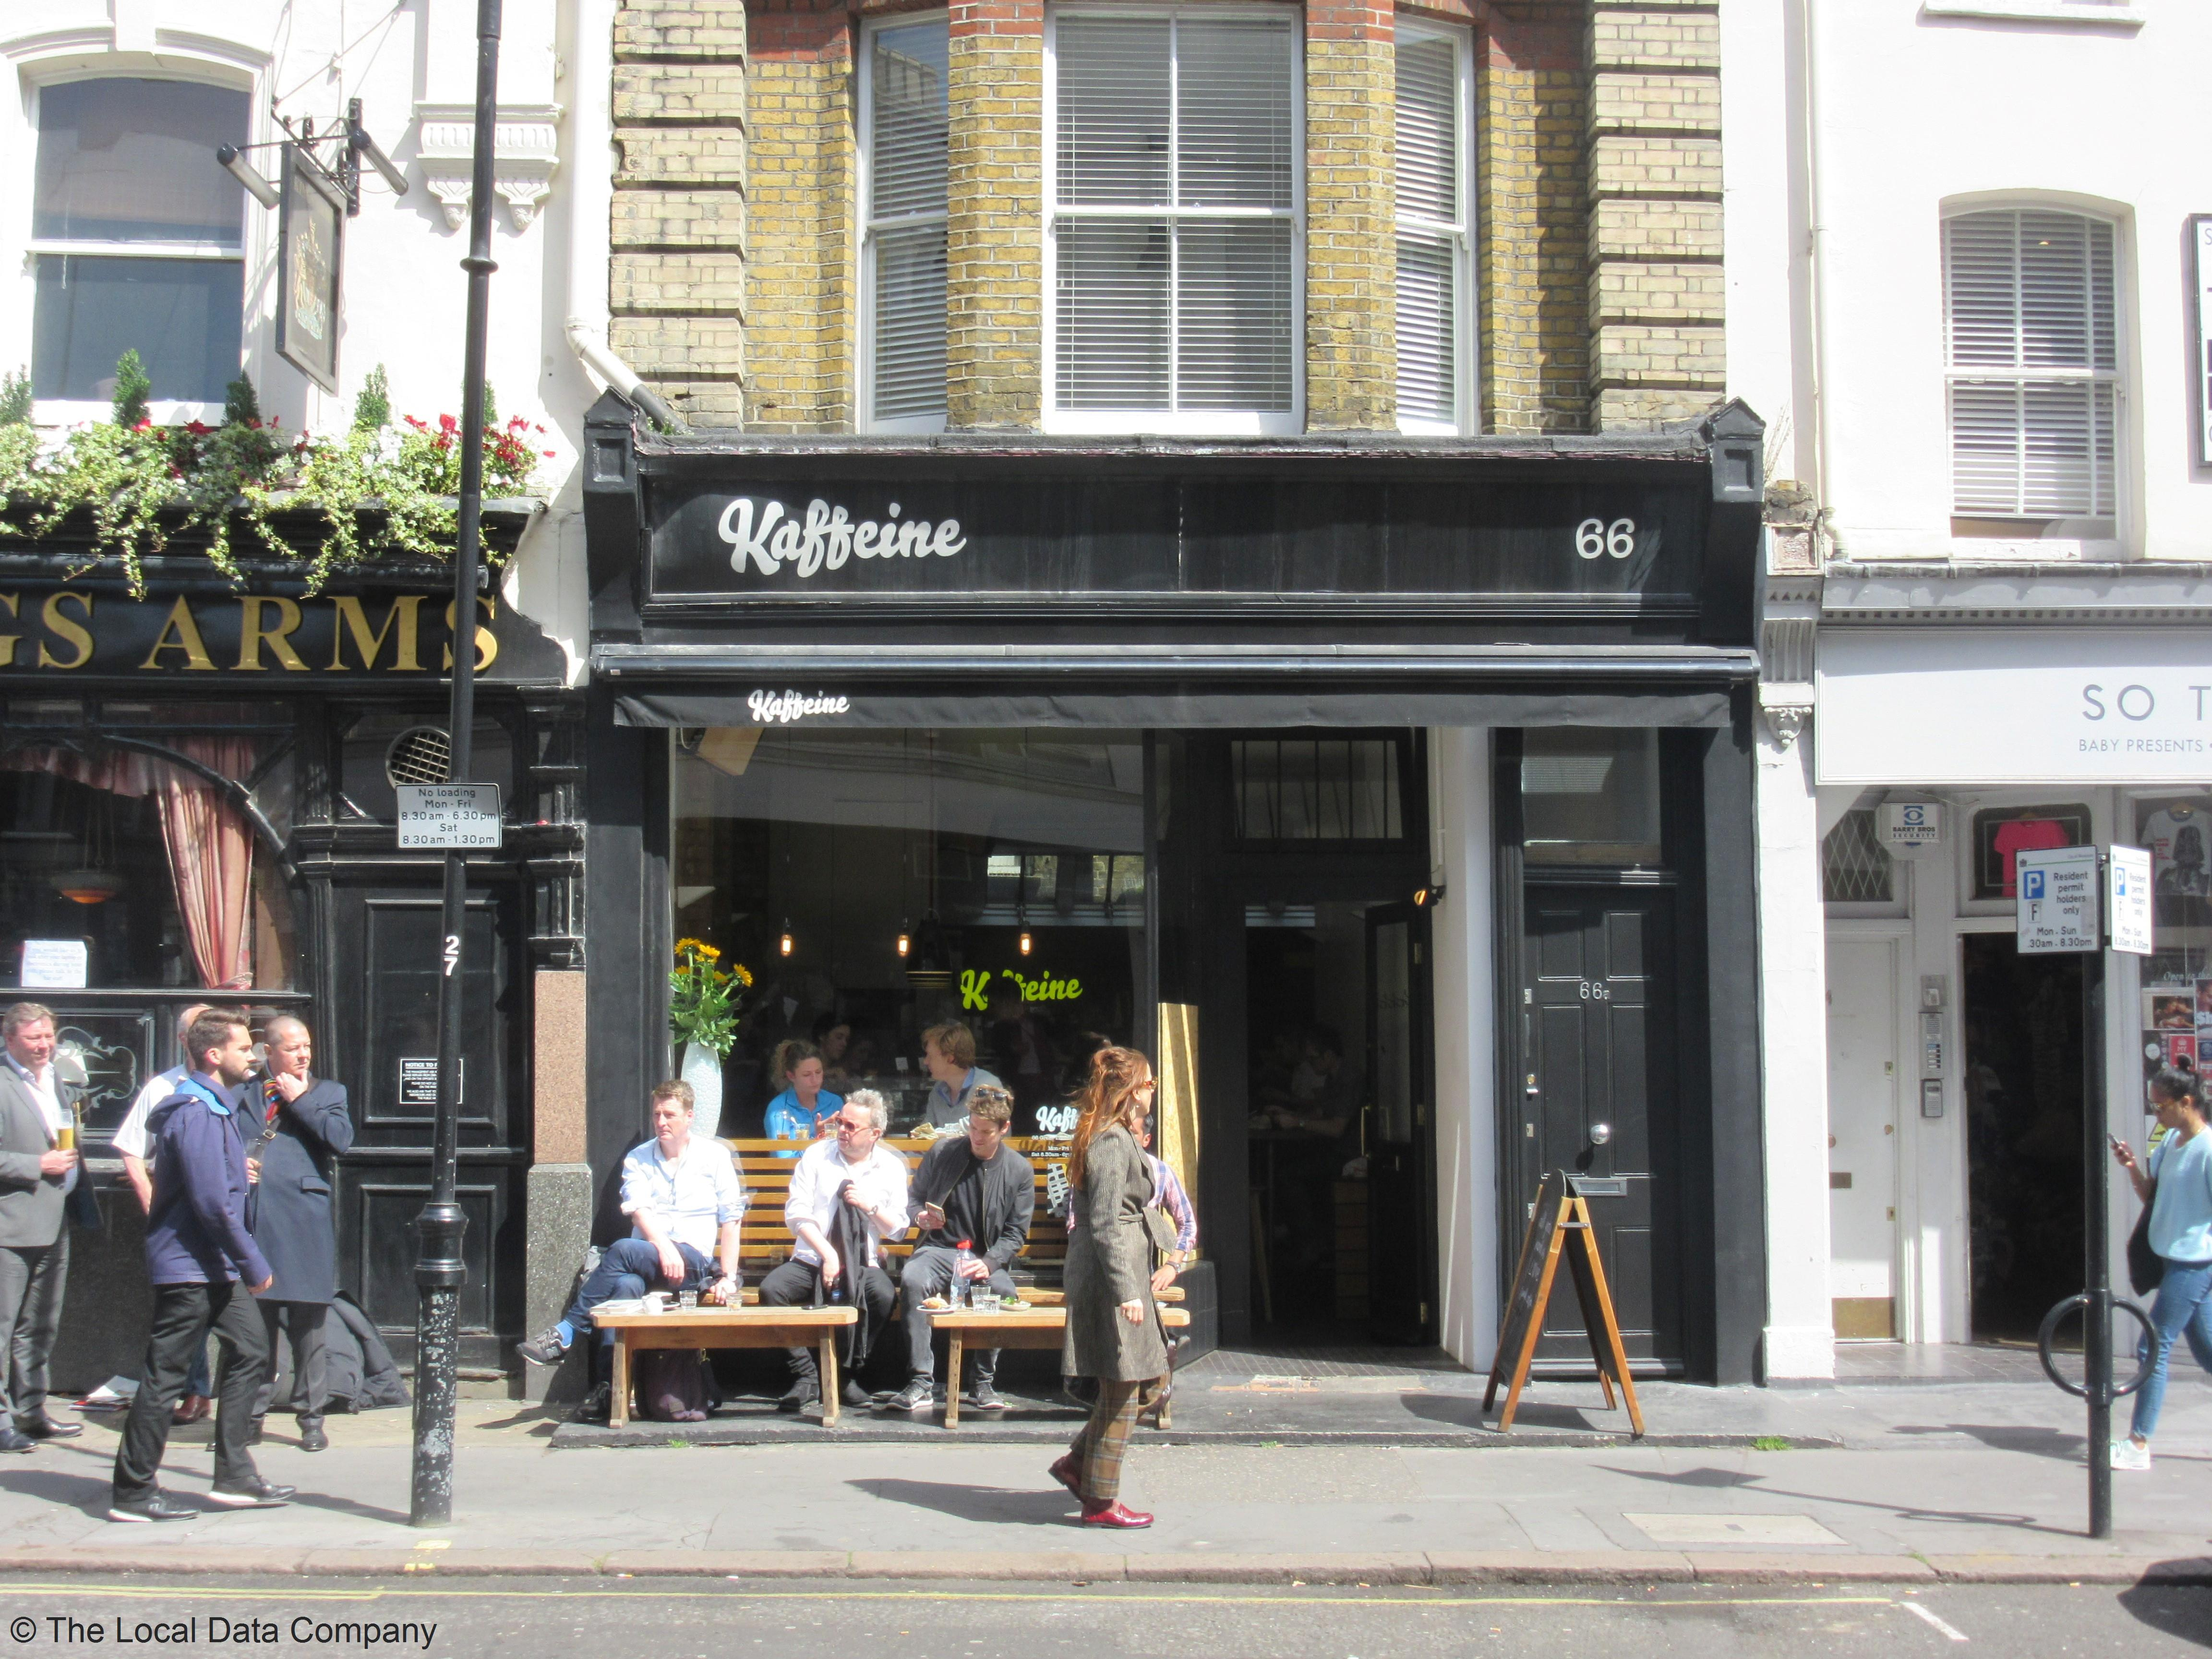 Kaffeine Great Titchfield Street London copy.jpg